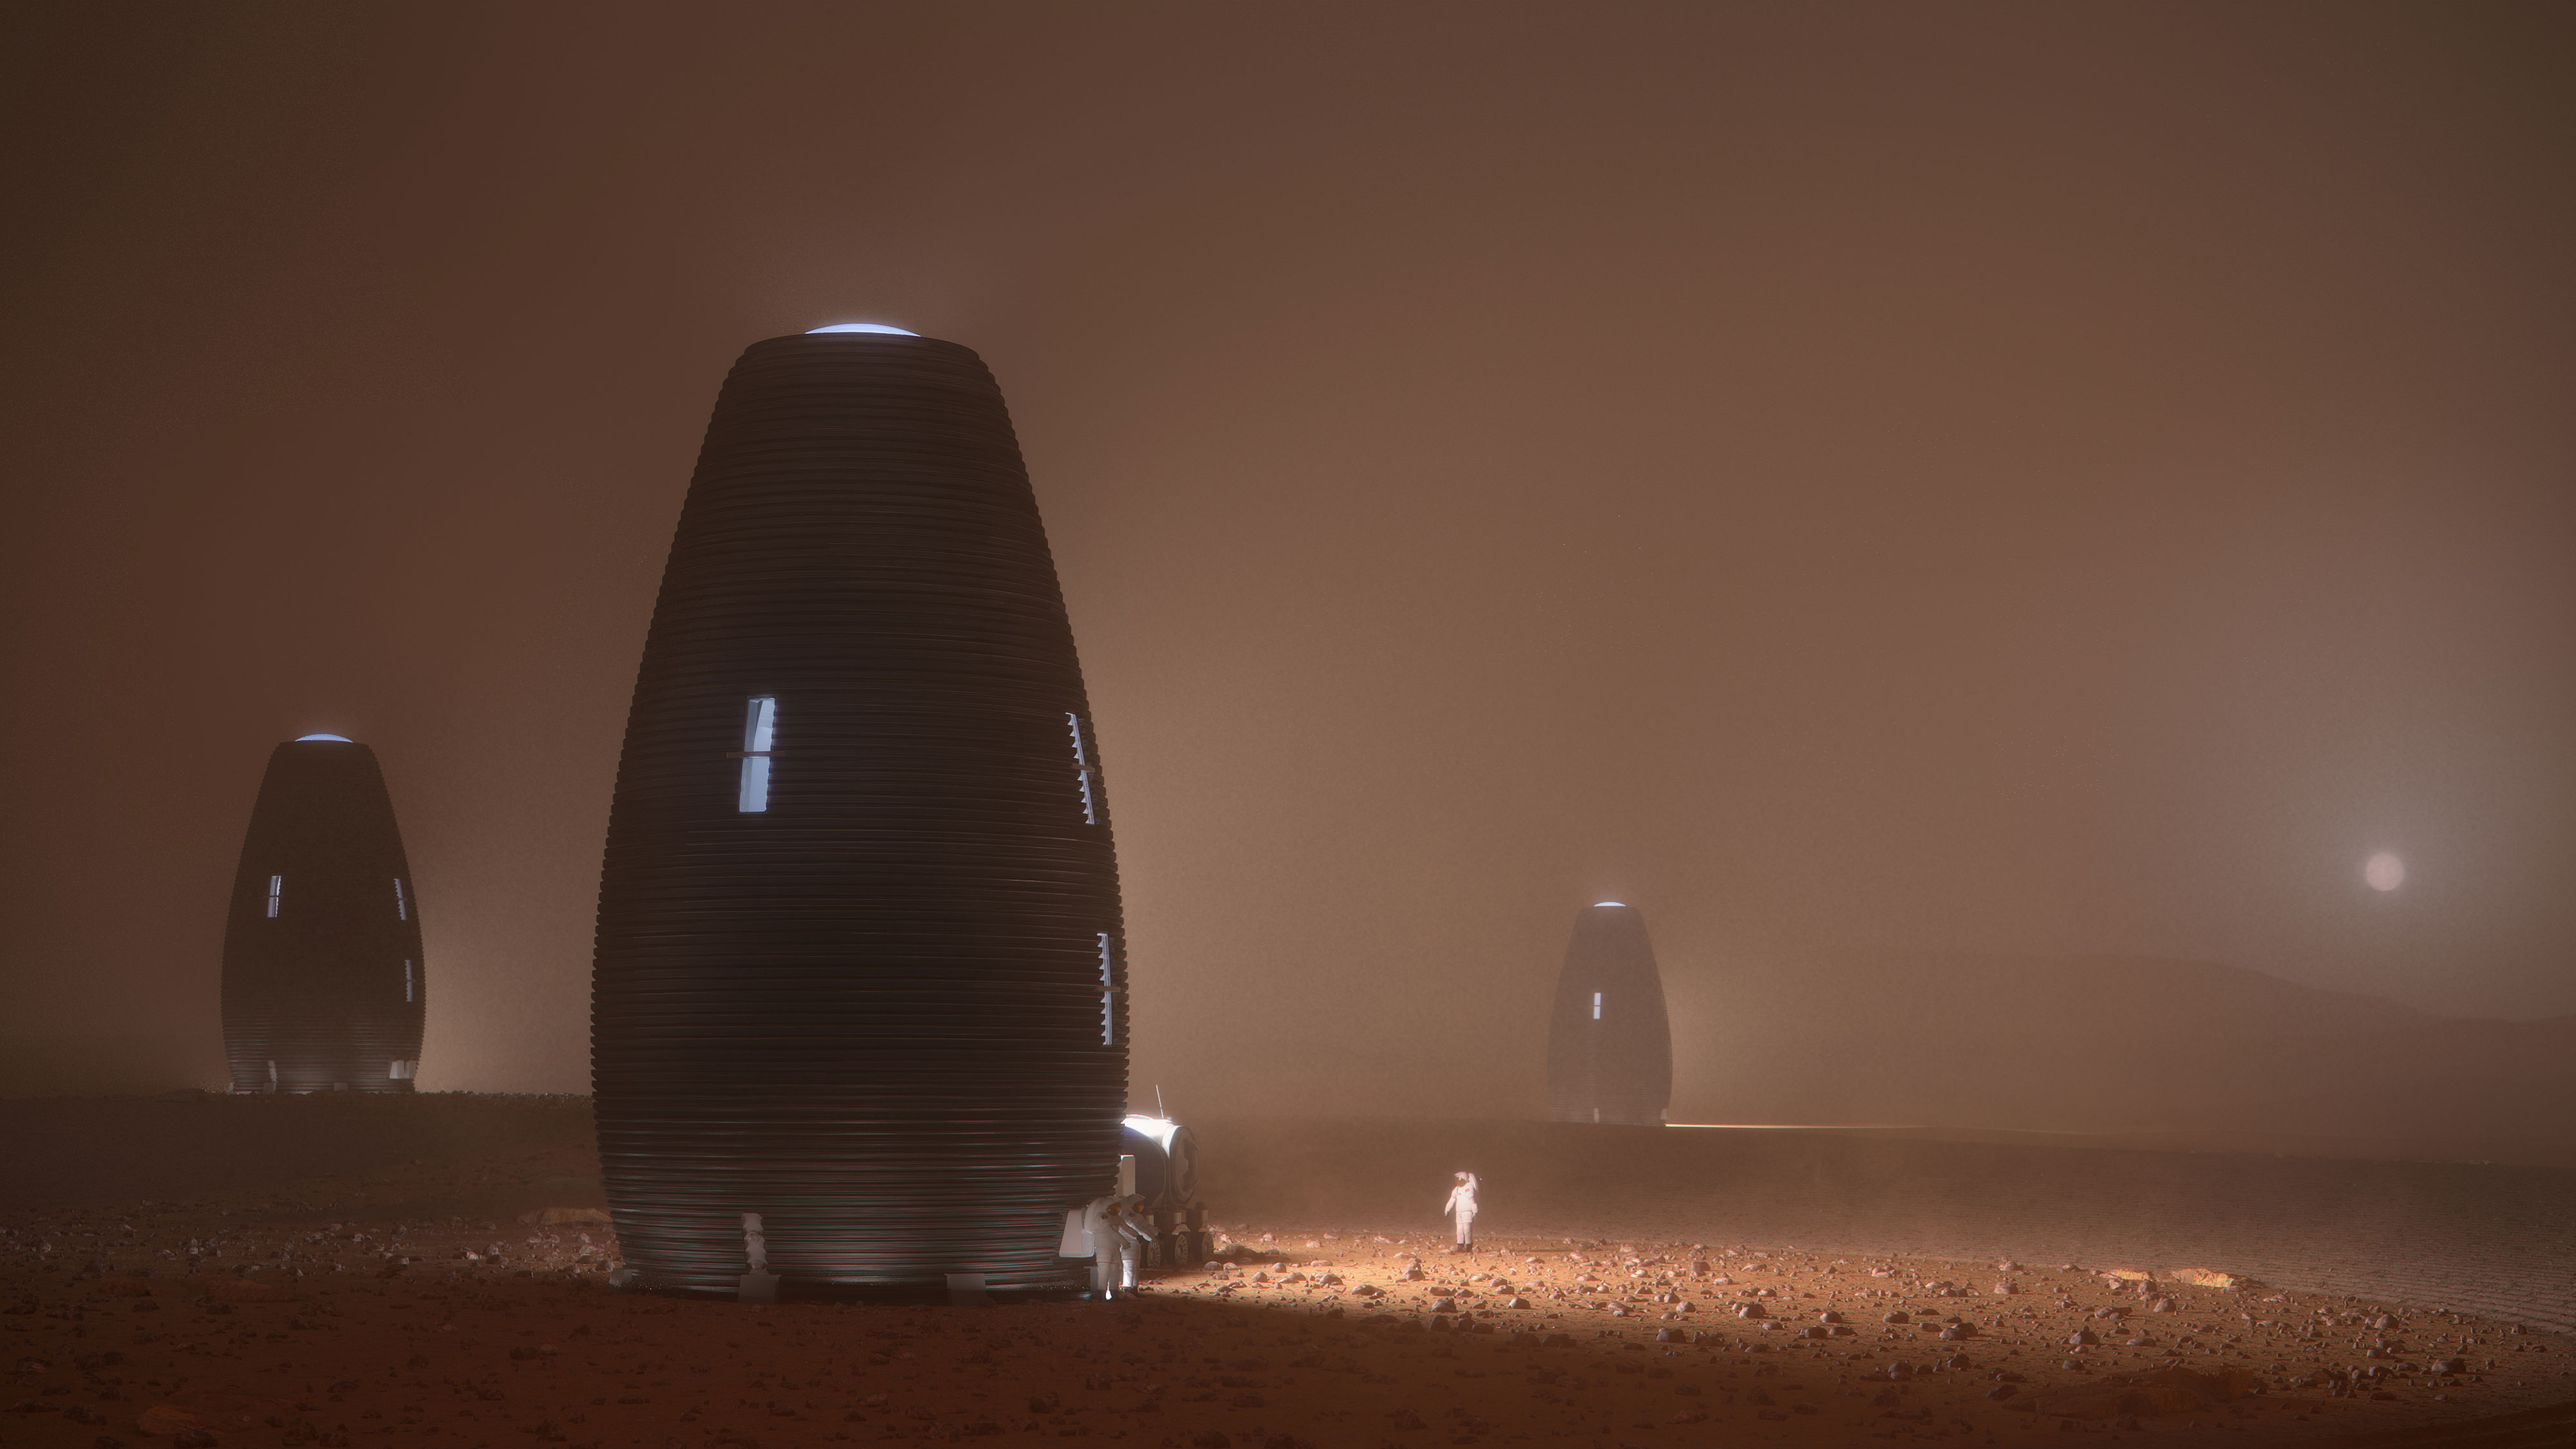 This 3D-printed beehive could be our future home on Mars